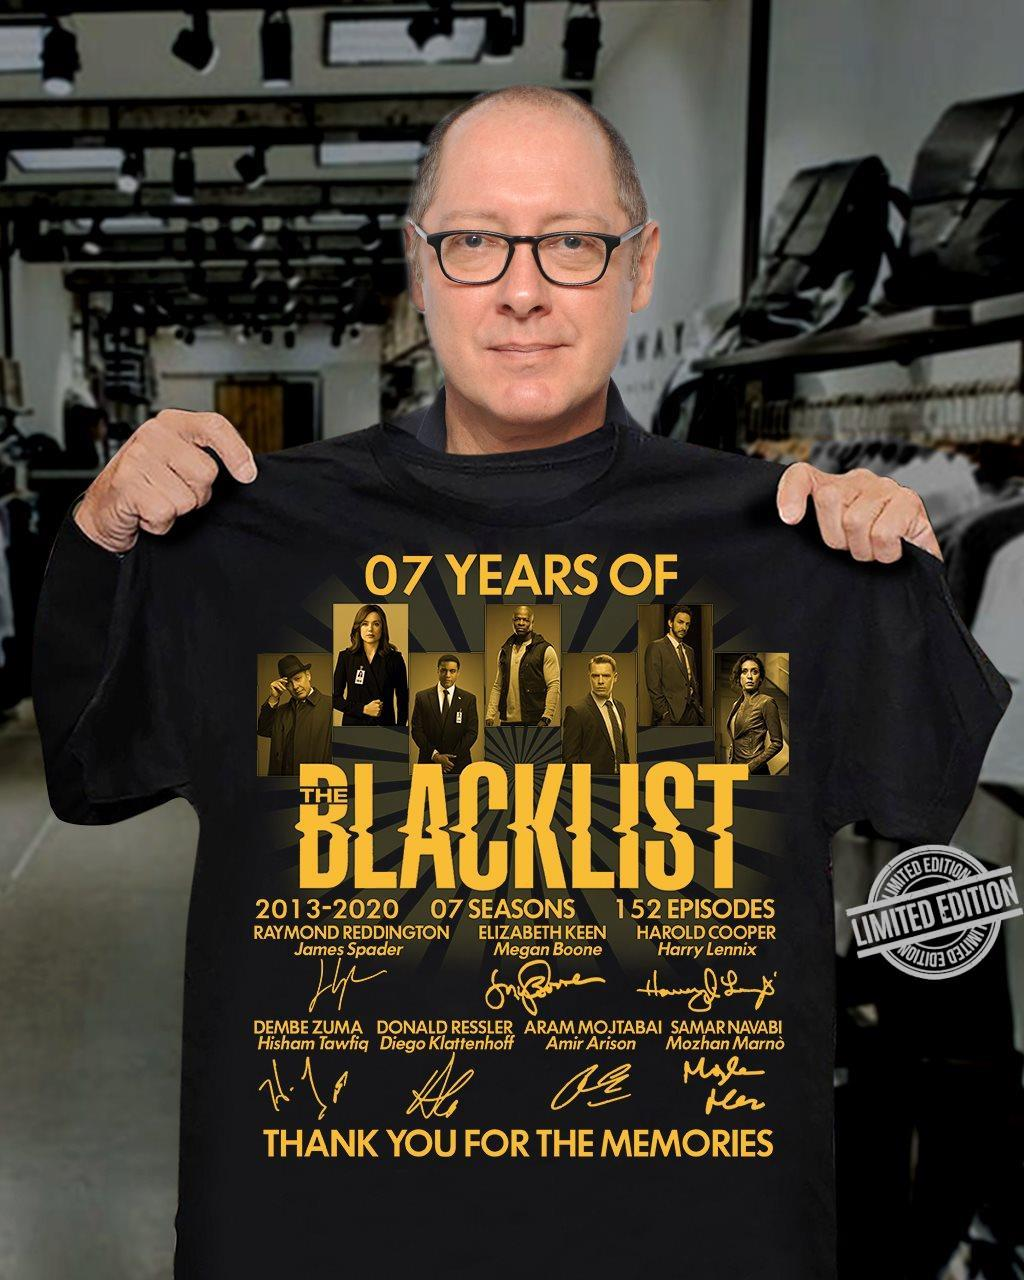 07 Years Of Blacklist 2013 2020 07 Season Thank You For The Memories Shirt